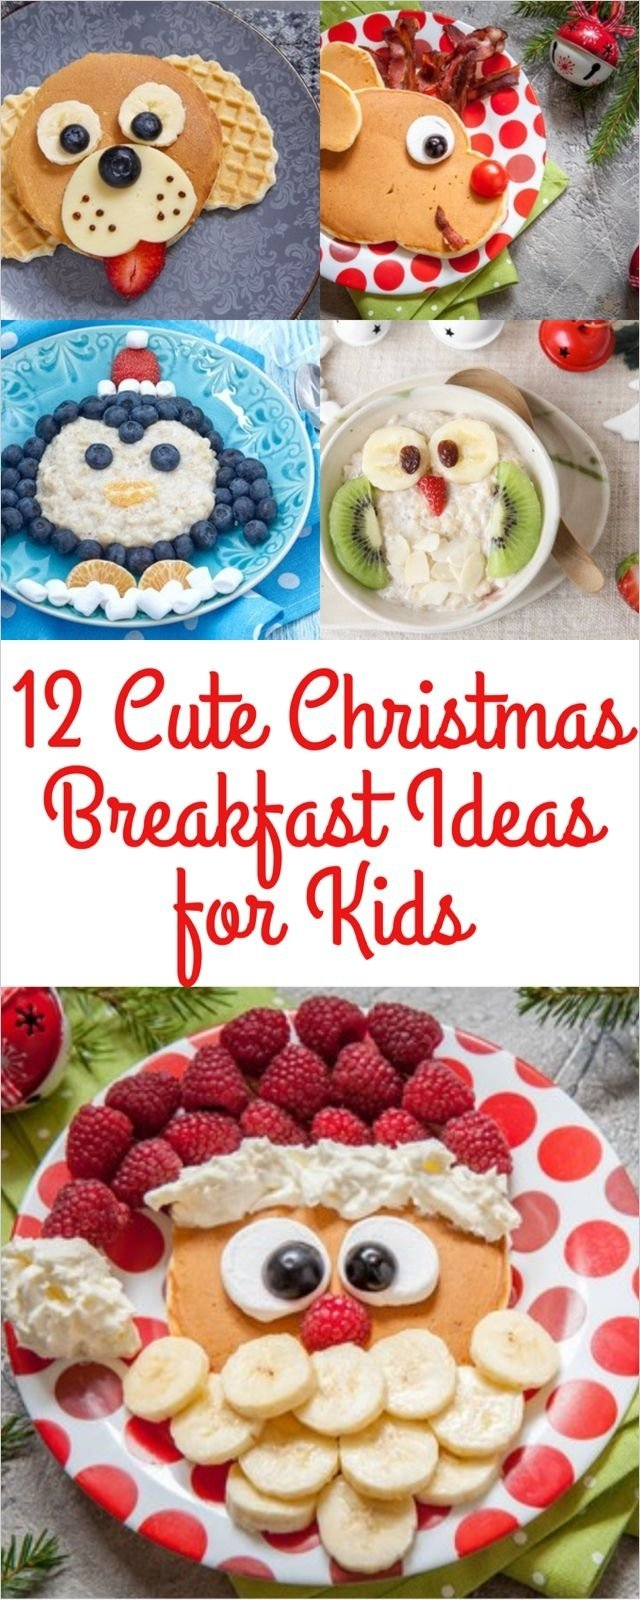 10 Stylish Easy Breakfast Ideas For Kids help the kiddos count down the 12 days to christmasmaking a 2020